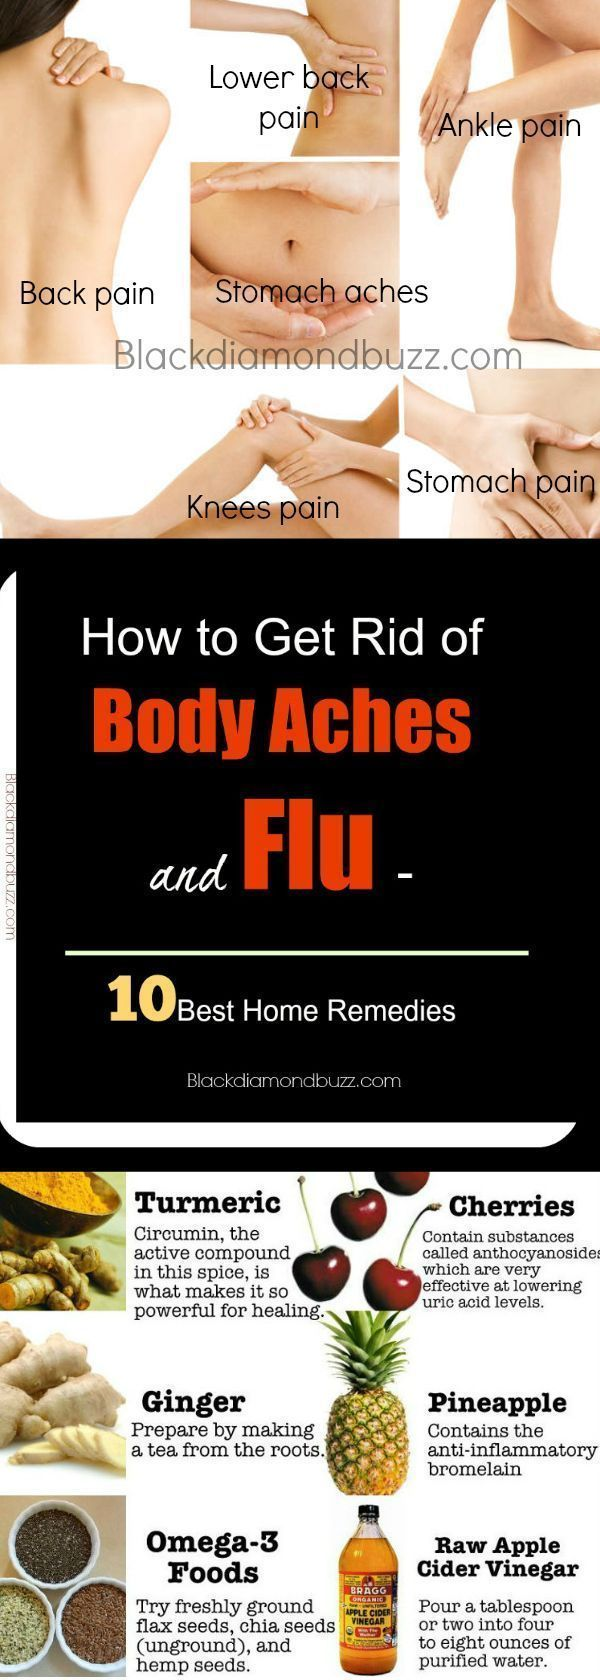 best Home Remedies for Flu images on Pinterest